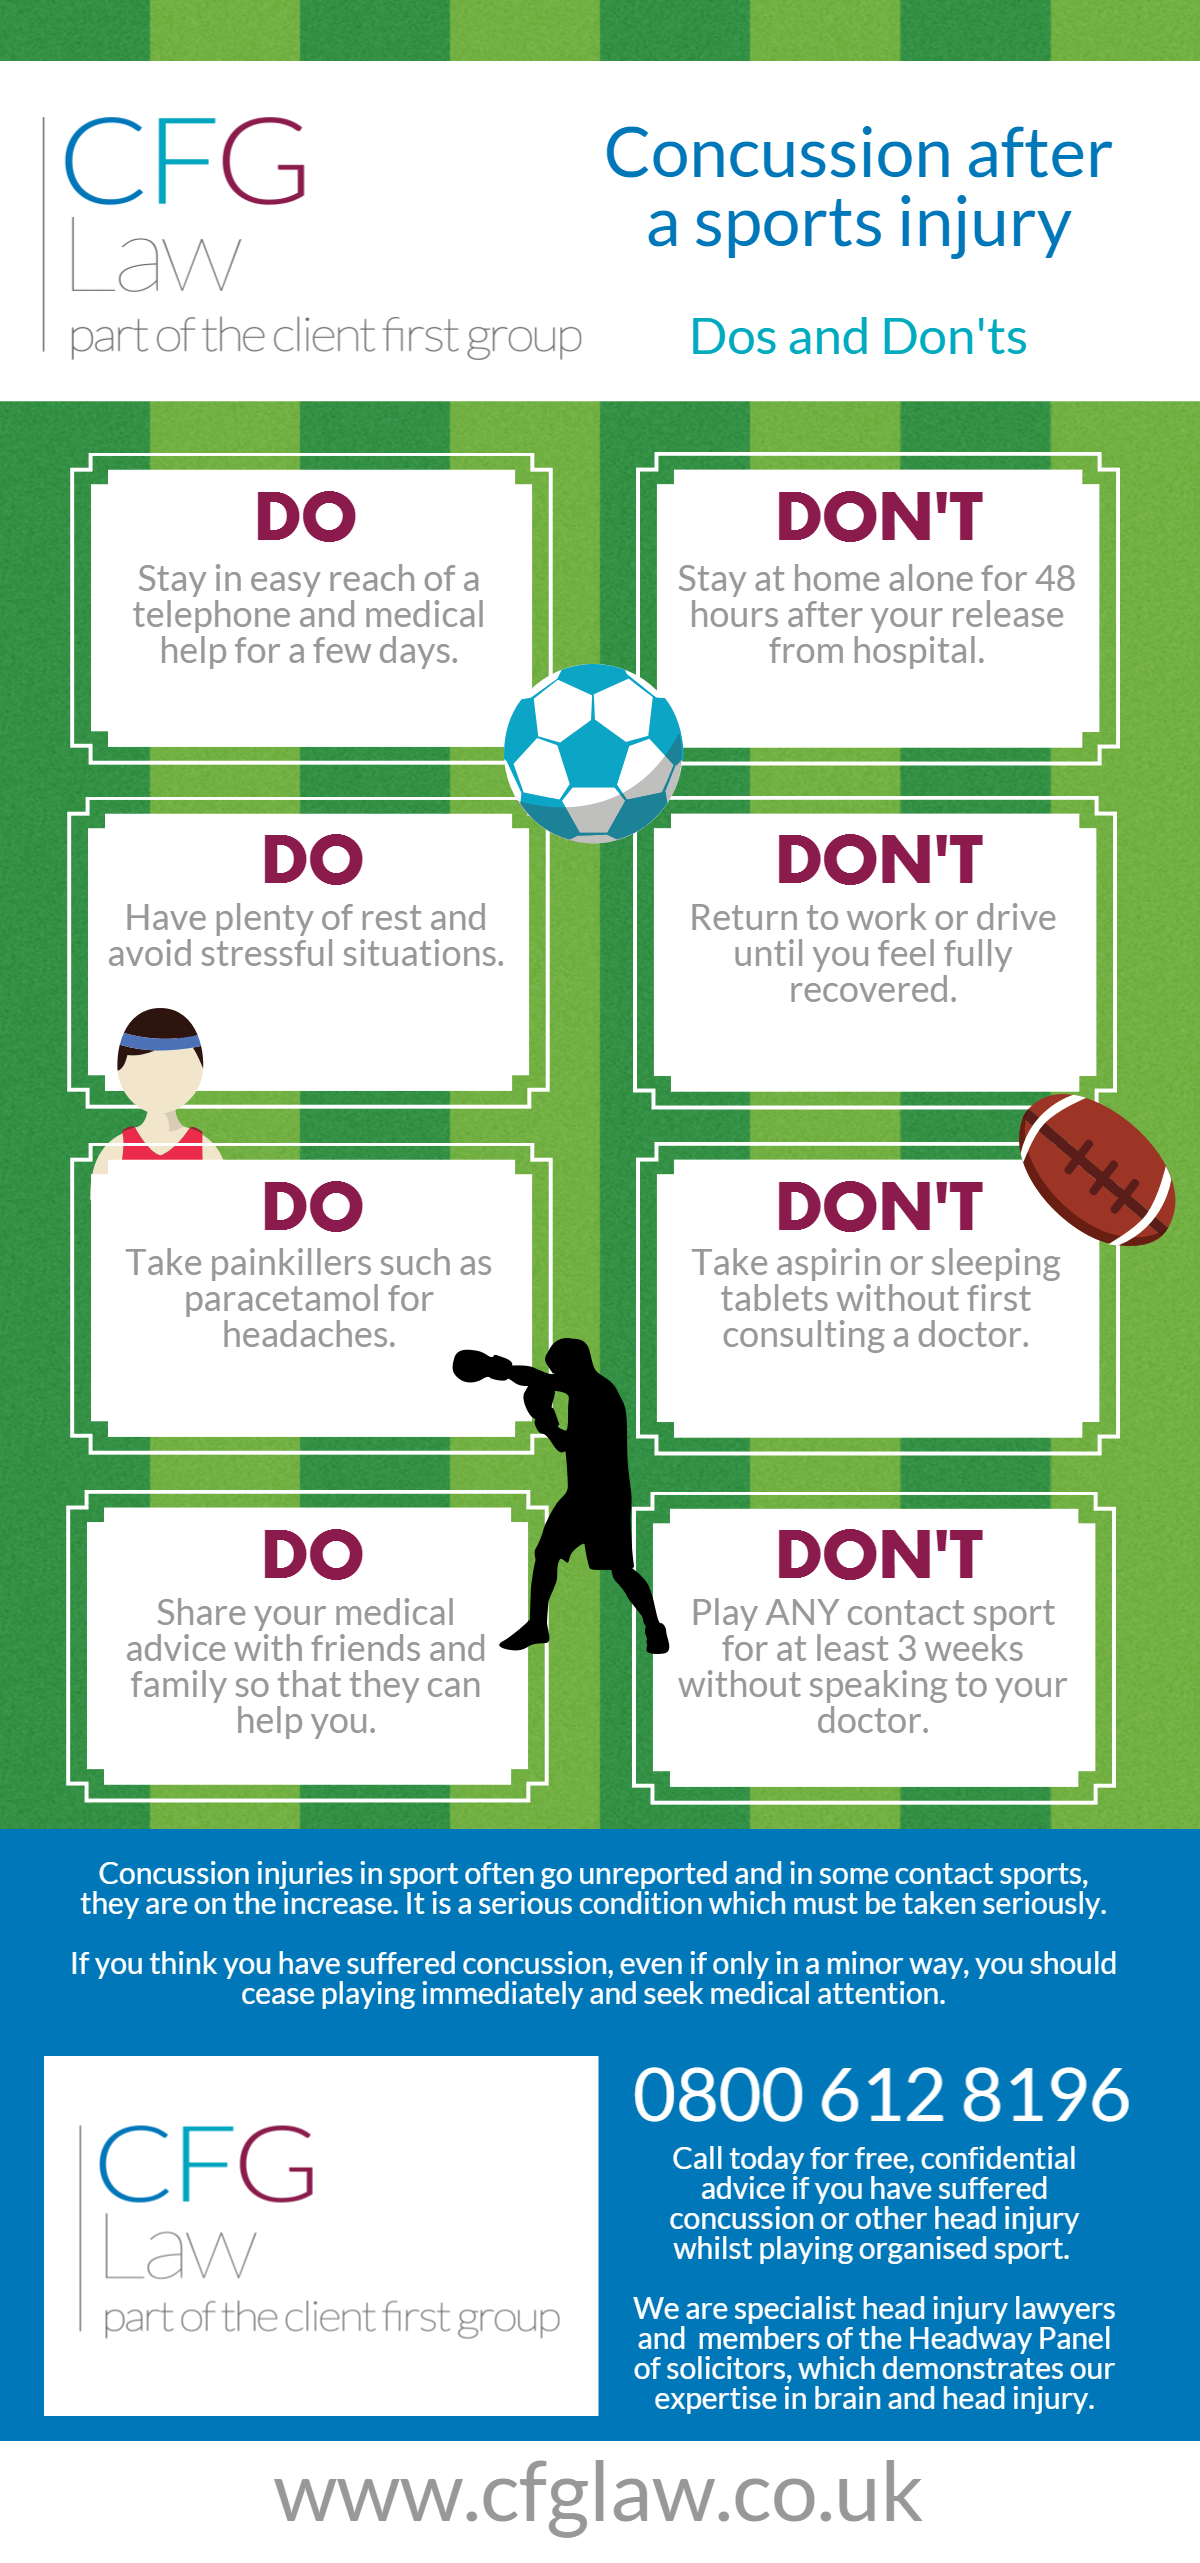 The dos and don'ts following a suspected sport concussion